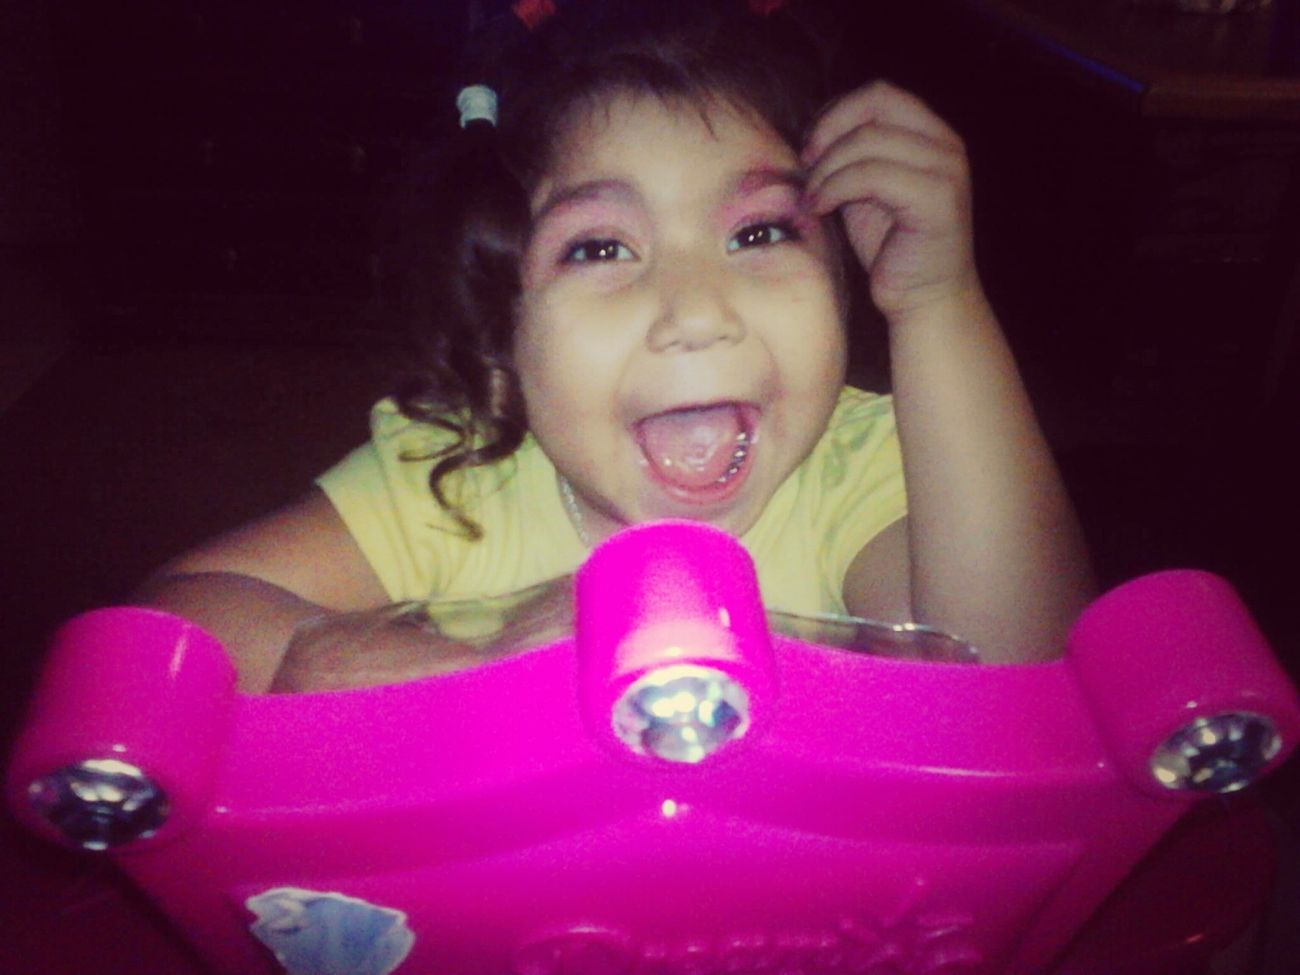 i wanna wish my liddo sister a happy birthday she is now 4 omg she grew up so fast well happy birthday liddo ugly ~ <3